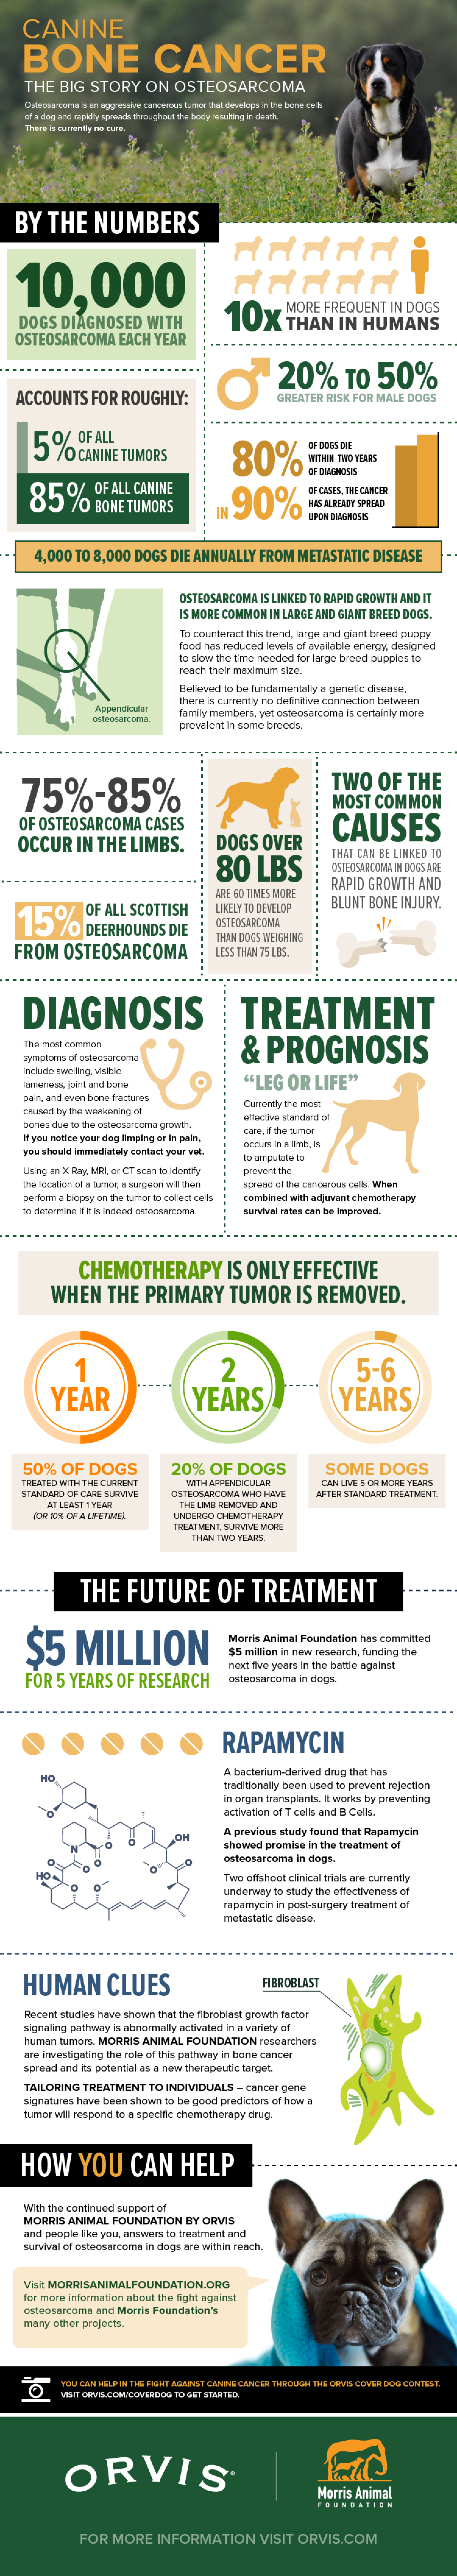 CANINE BONE CANCER: THE BIG STORY ON OSTEOSARCOMA Infographic